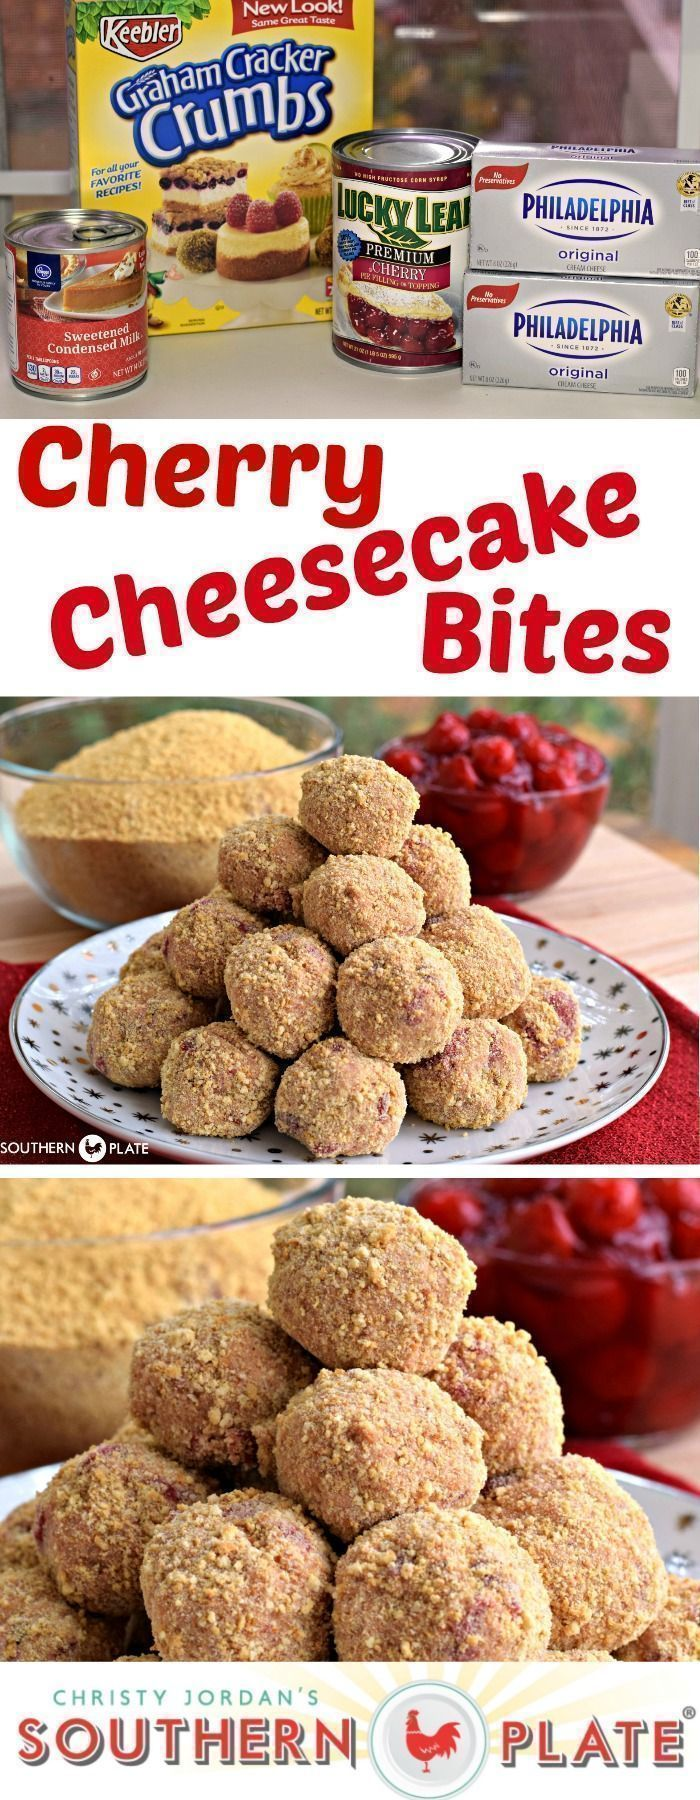 Cherry Cheesecake Bites - All the yum in bite size form! #easy #recipes #desserts #cheesecake #cheesecakes